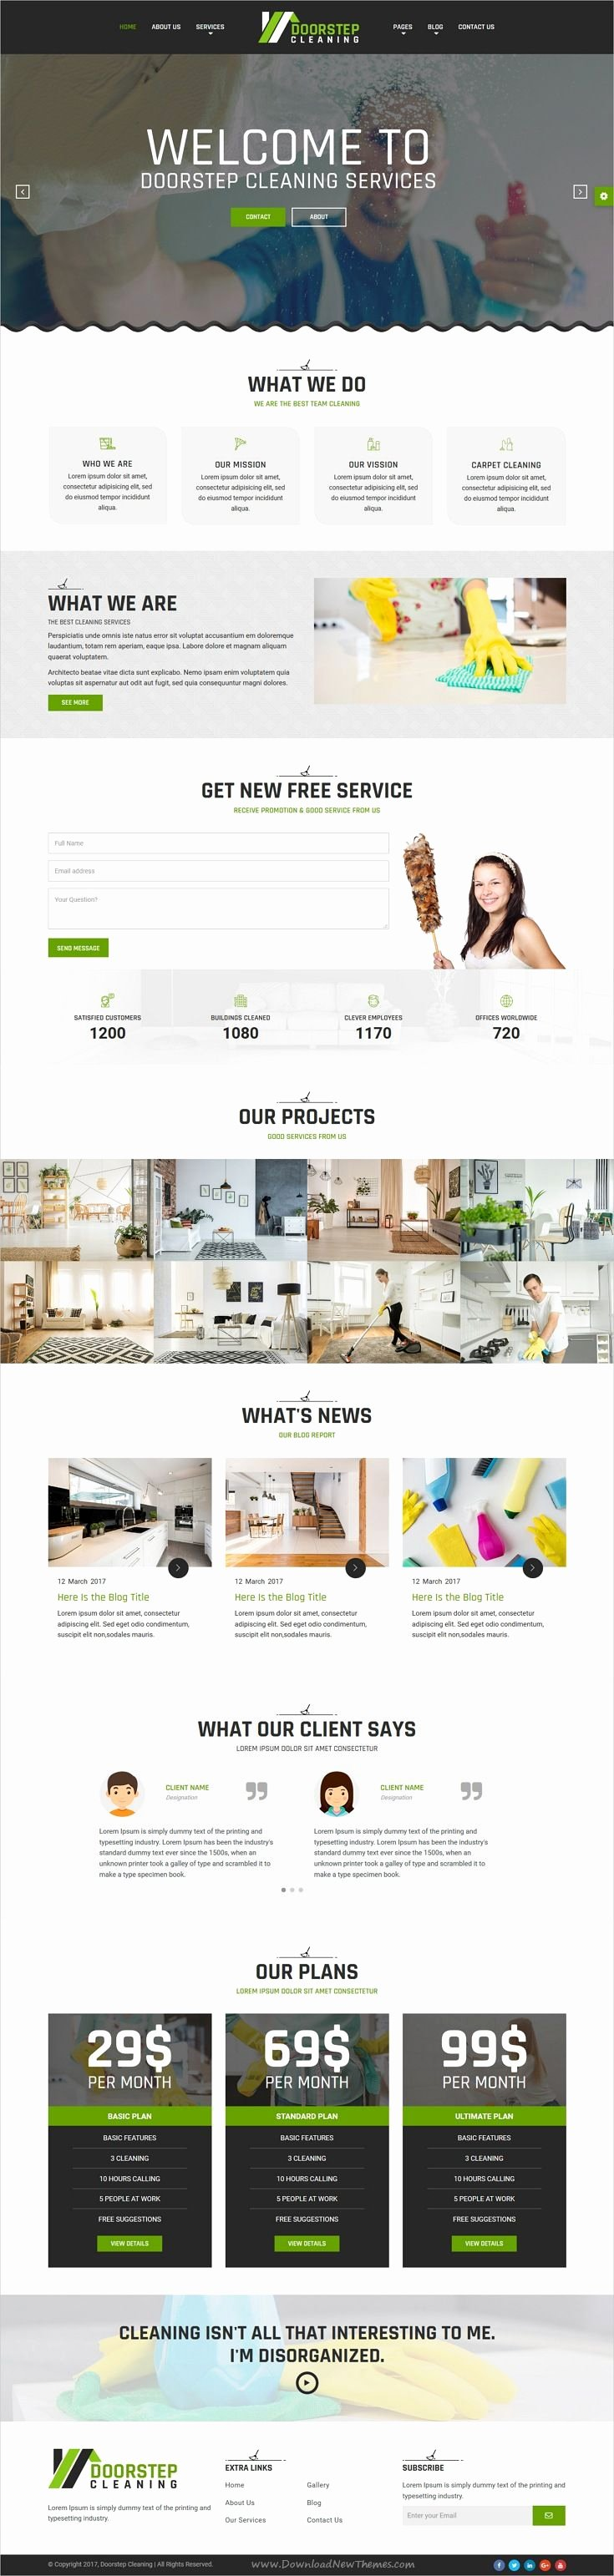 Cleaning Services Website Template Lovely Best 25 Cleaning Services Ideas On Pinterest